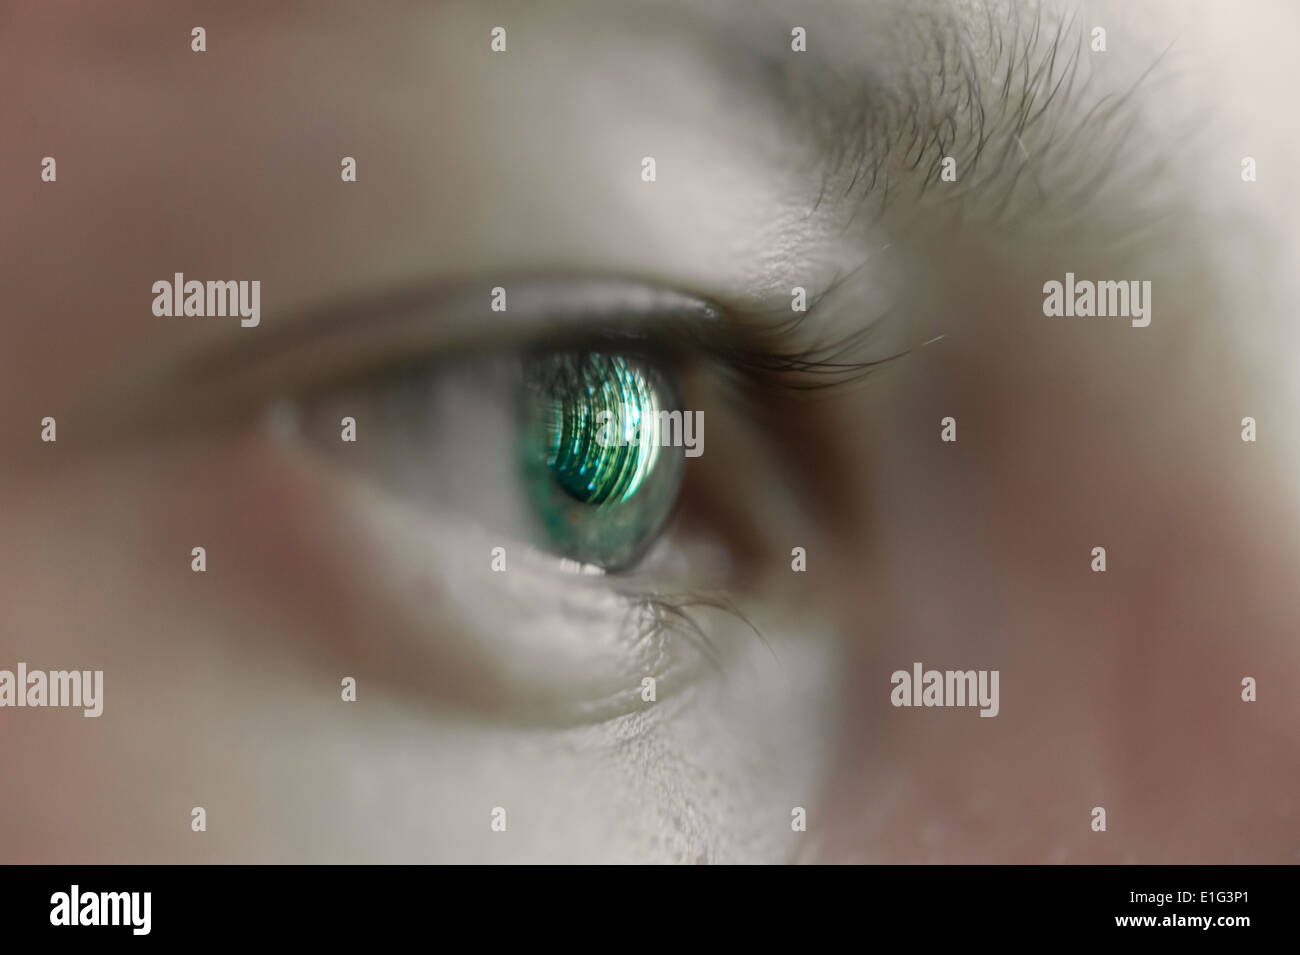 Reflection of a computer screen in a human eye - Stock Image